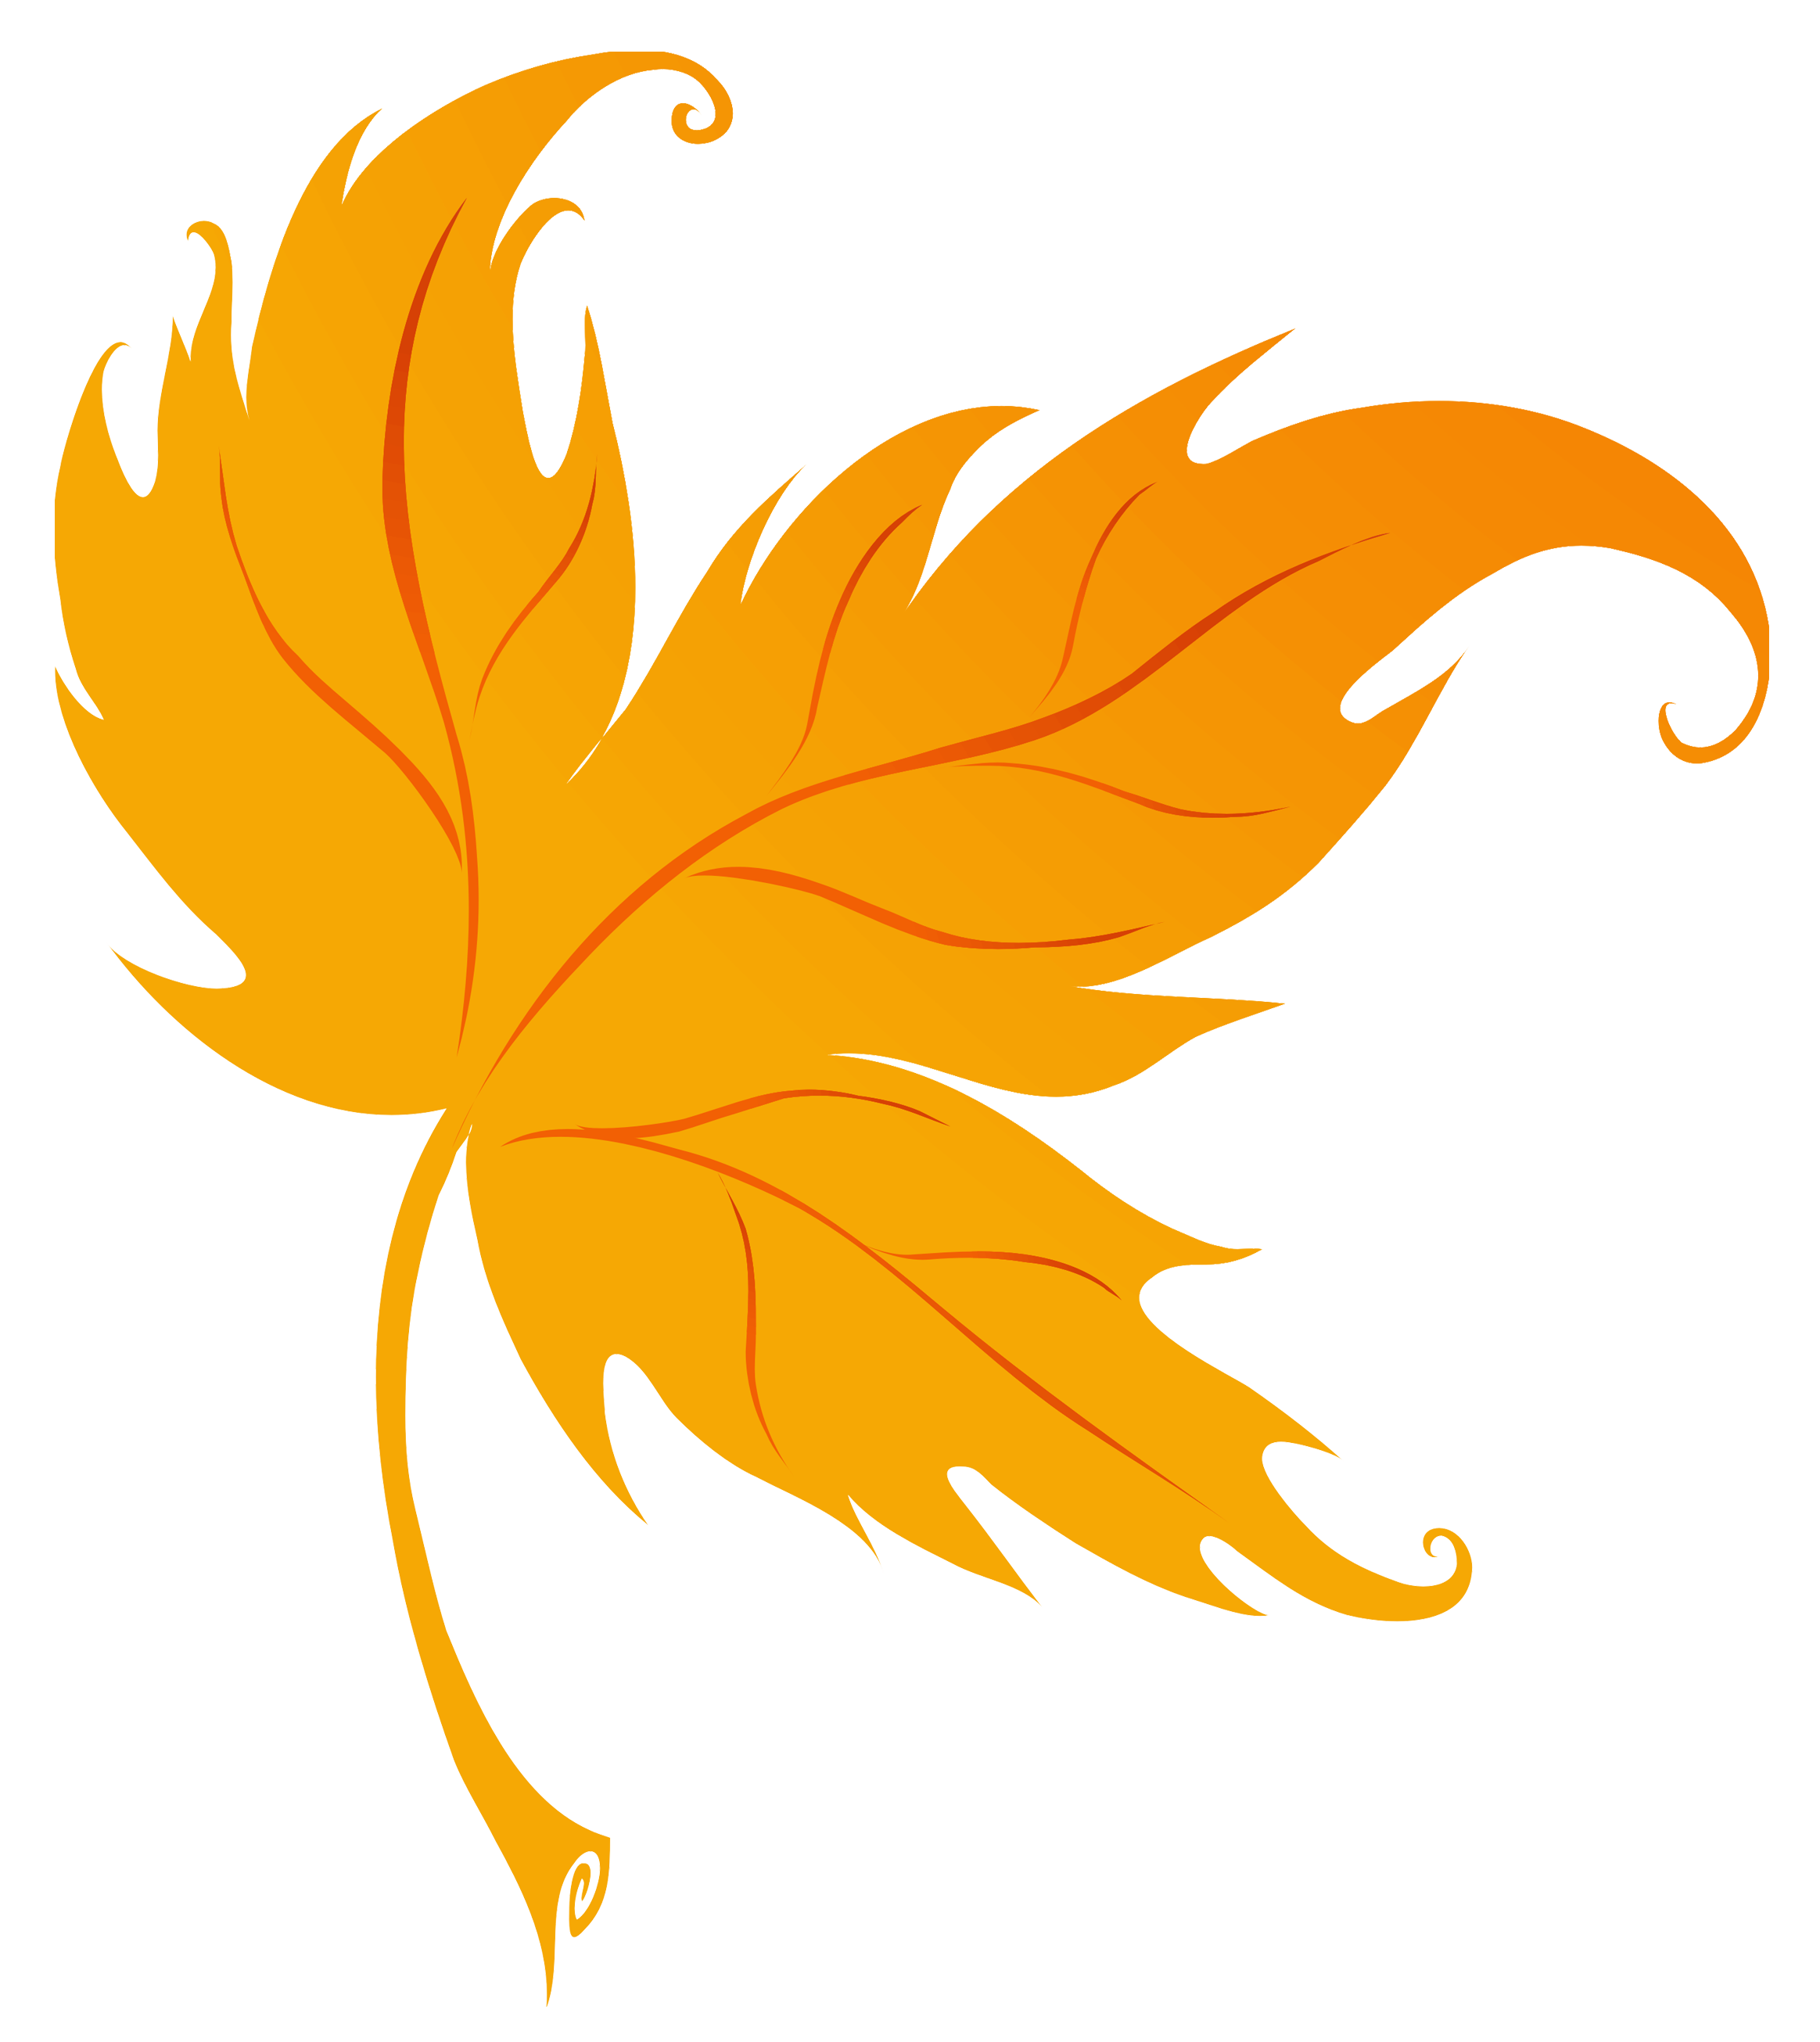 2327x2611 Fall Leaf Png Clipart Imageu200b Gallery Yopriceville